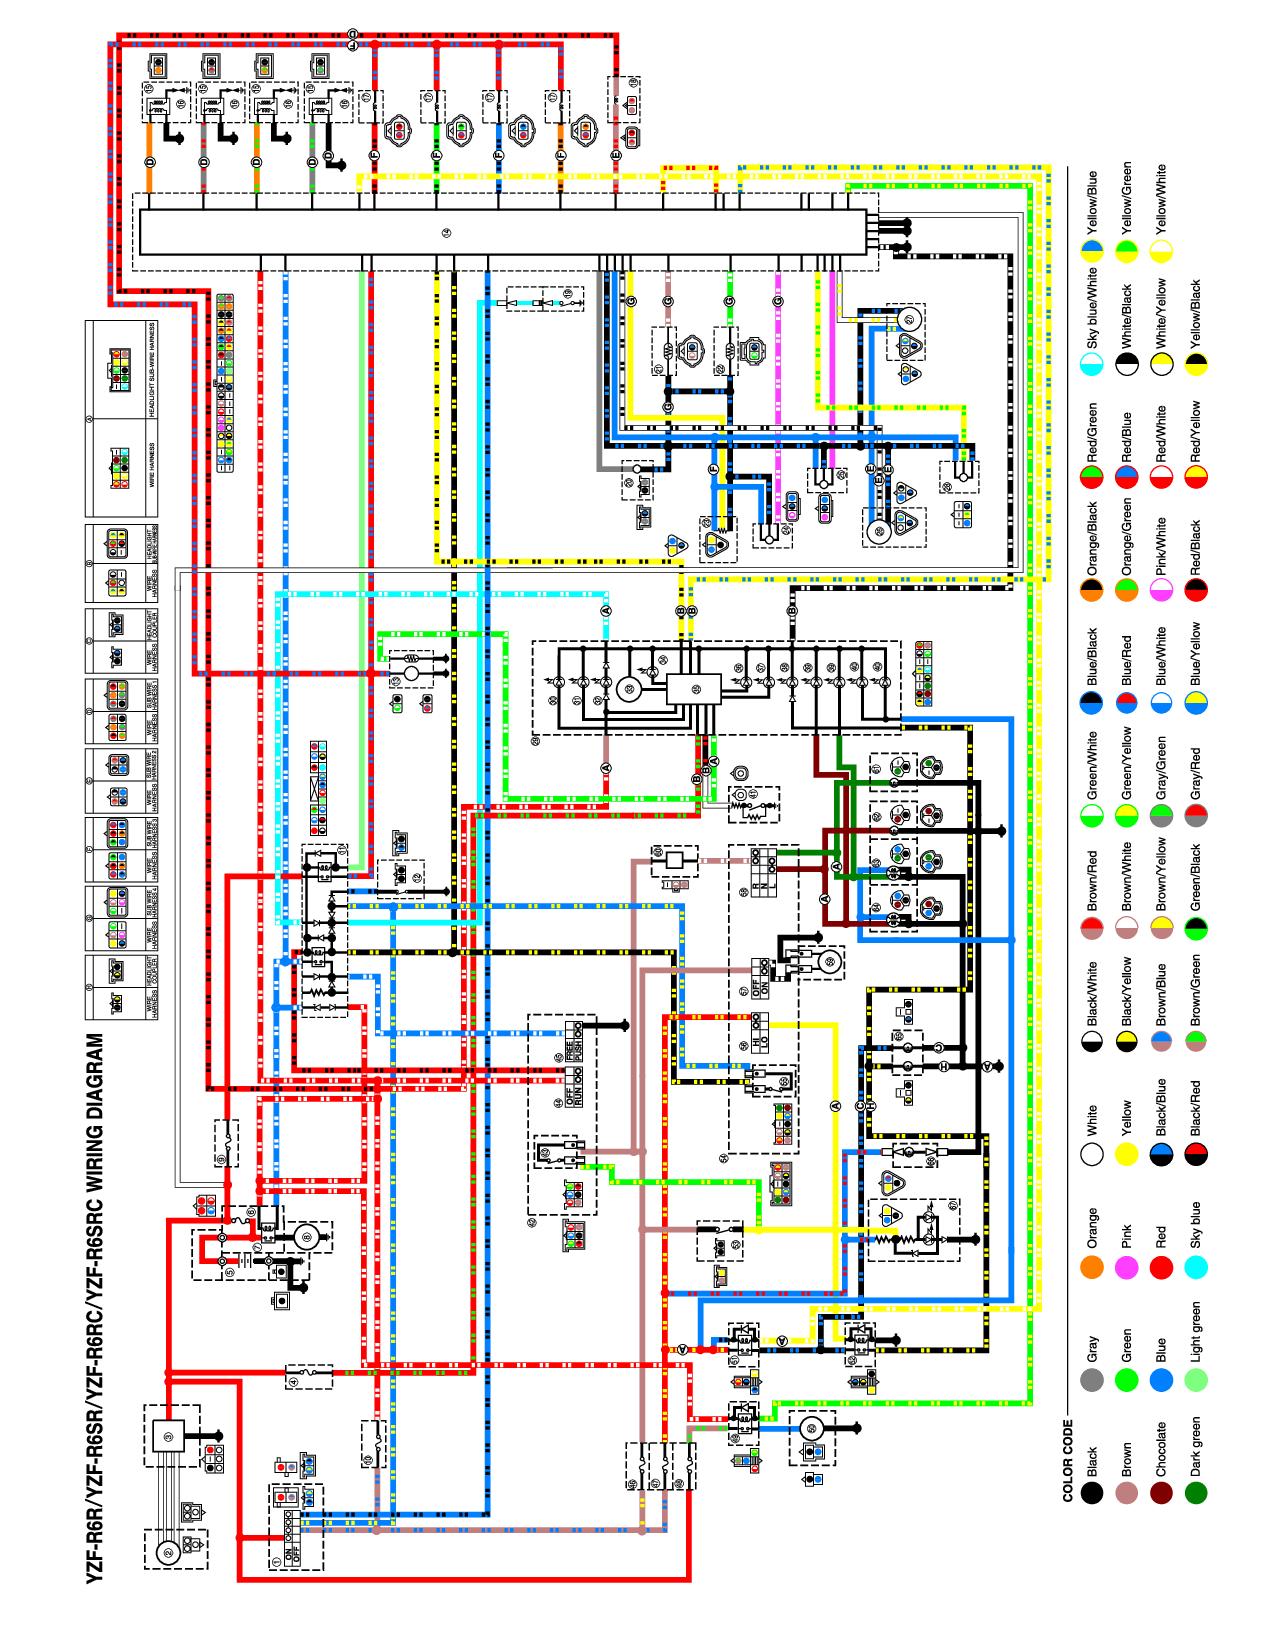 small engine wiring diagram small engine wiring diagram wiring diagram database kitchenset co